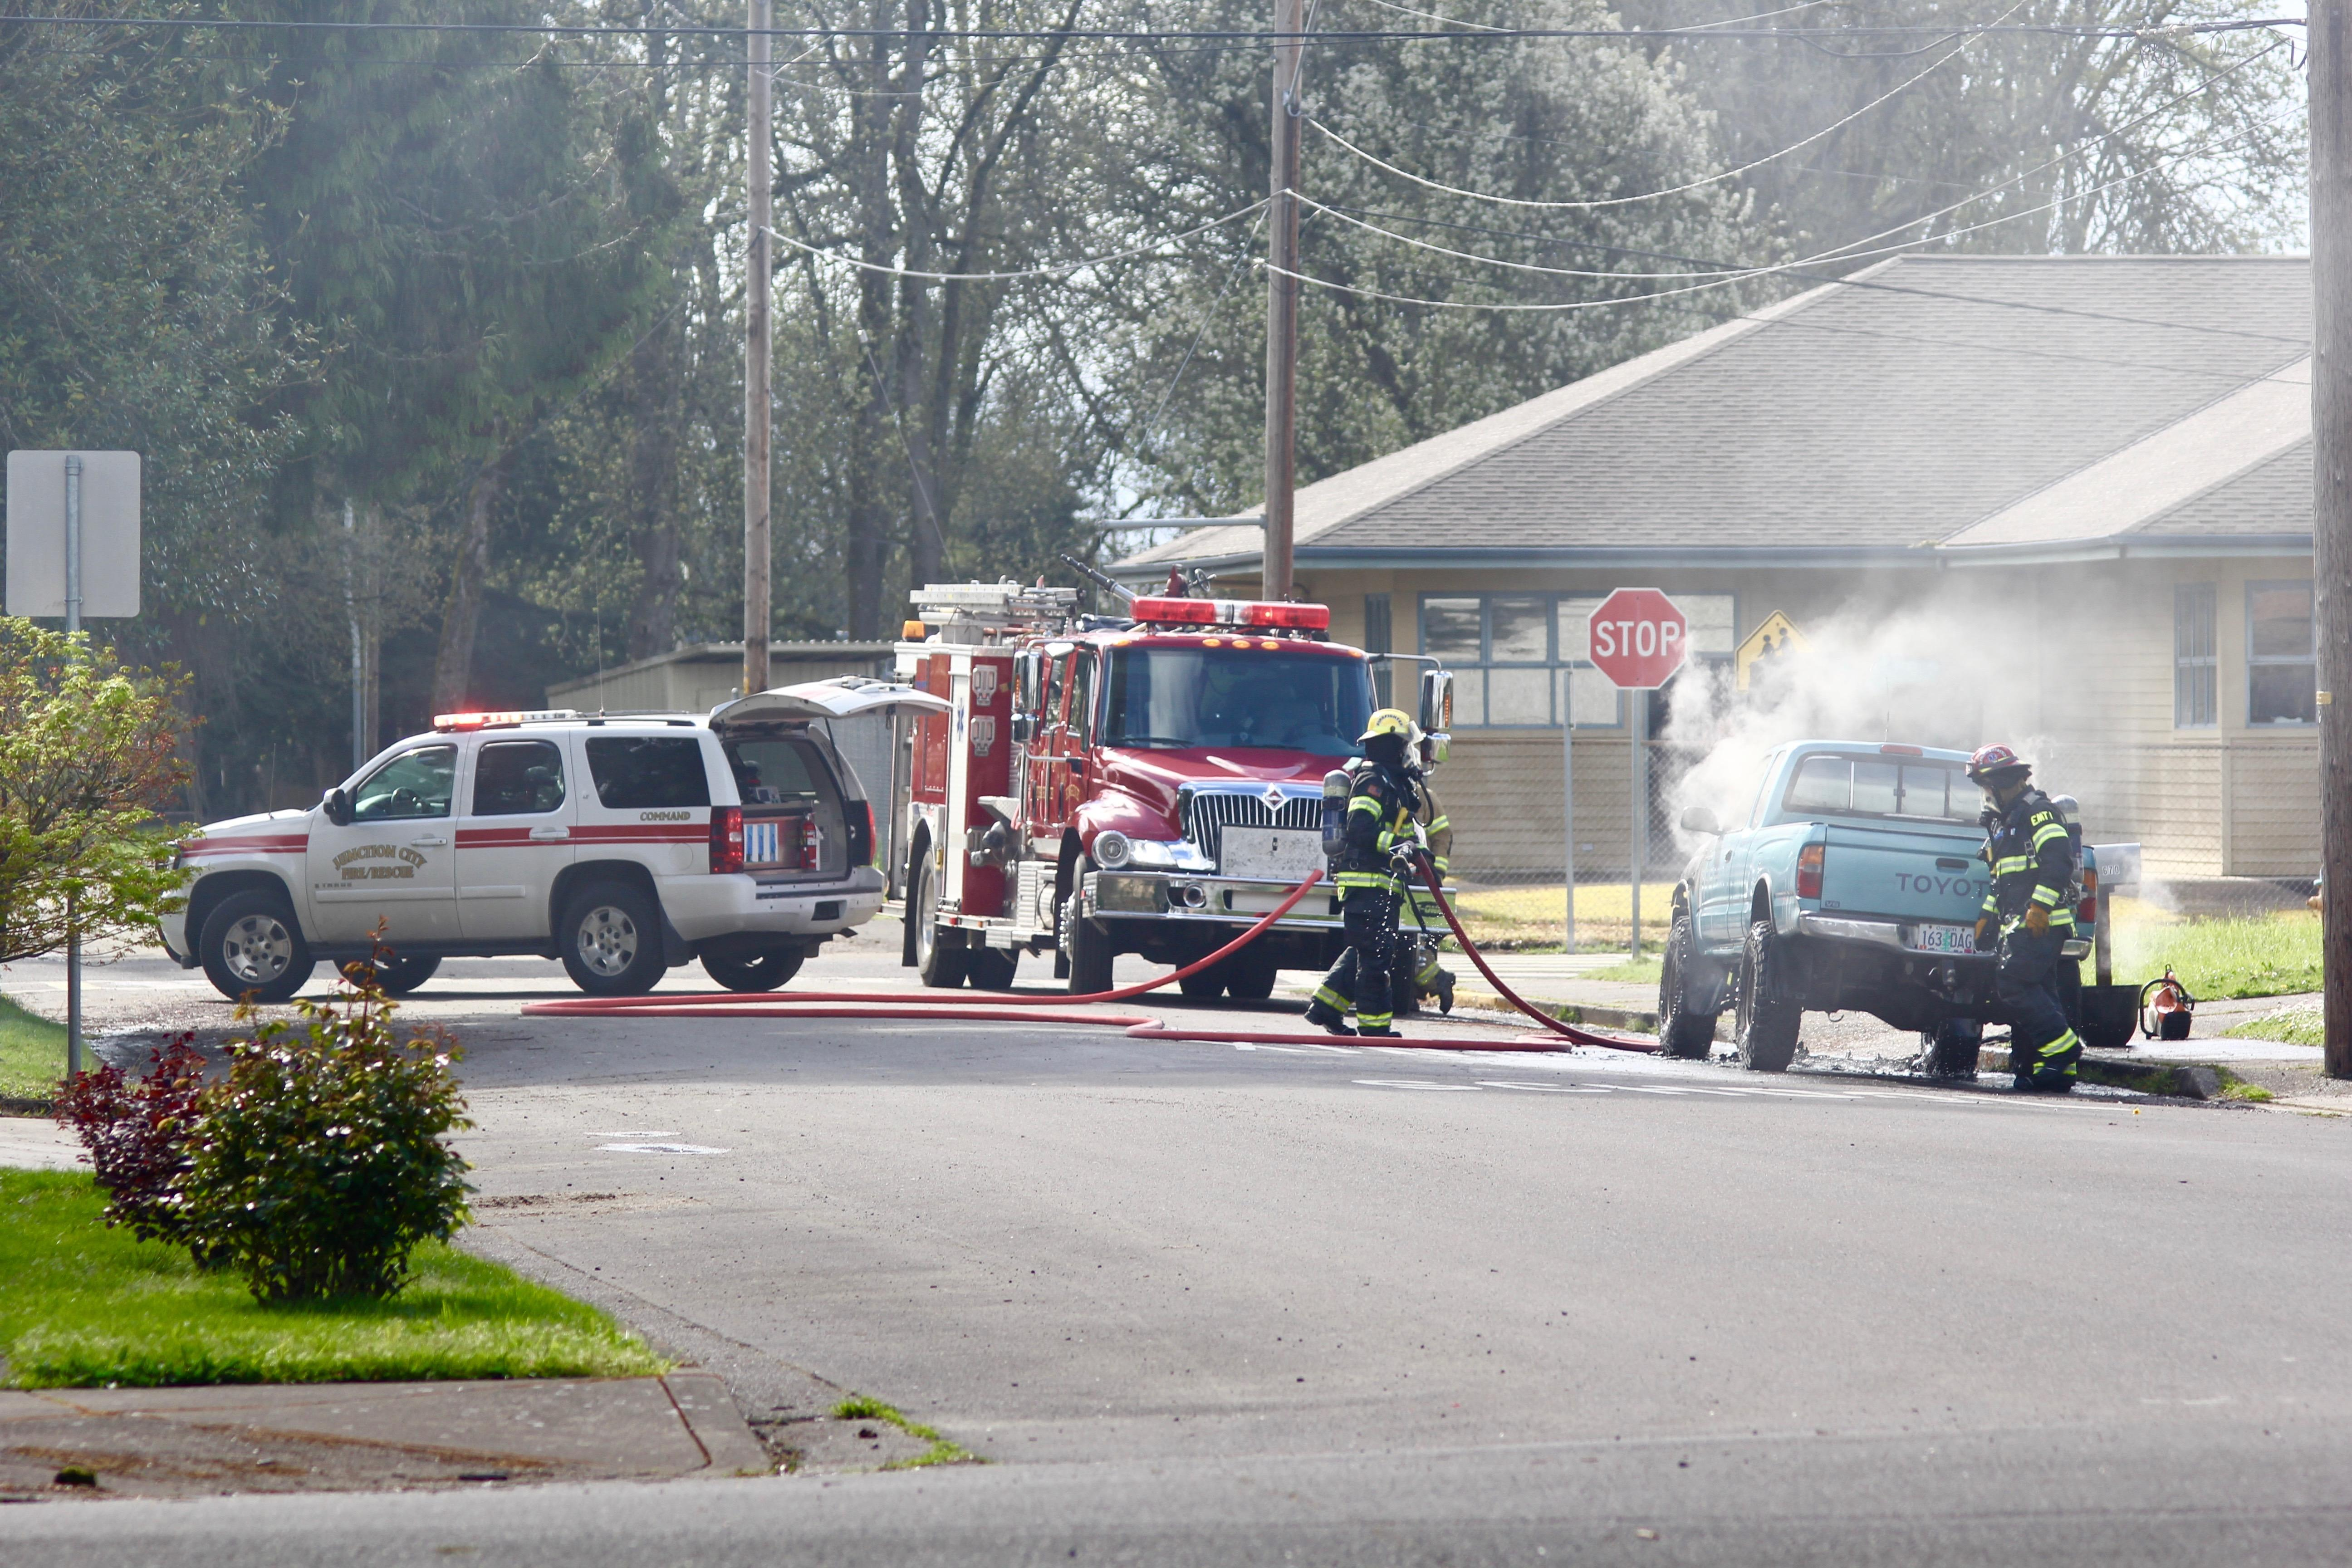 Smoke filled 13th Street on Thursday afternoon as a pickup truck caught fire. No one was injured. (Photo by Caleb Amundson)